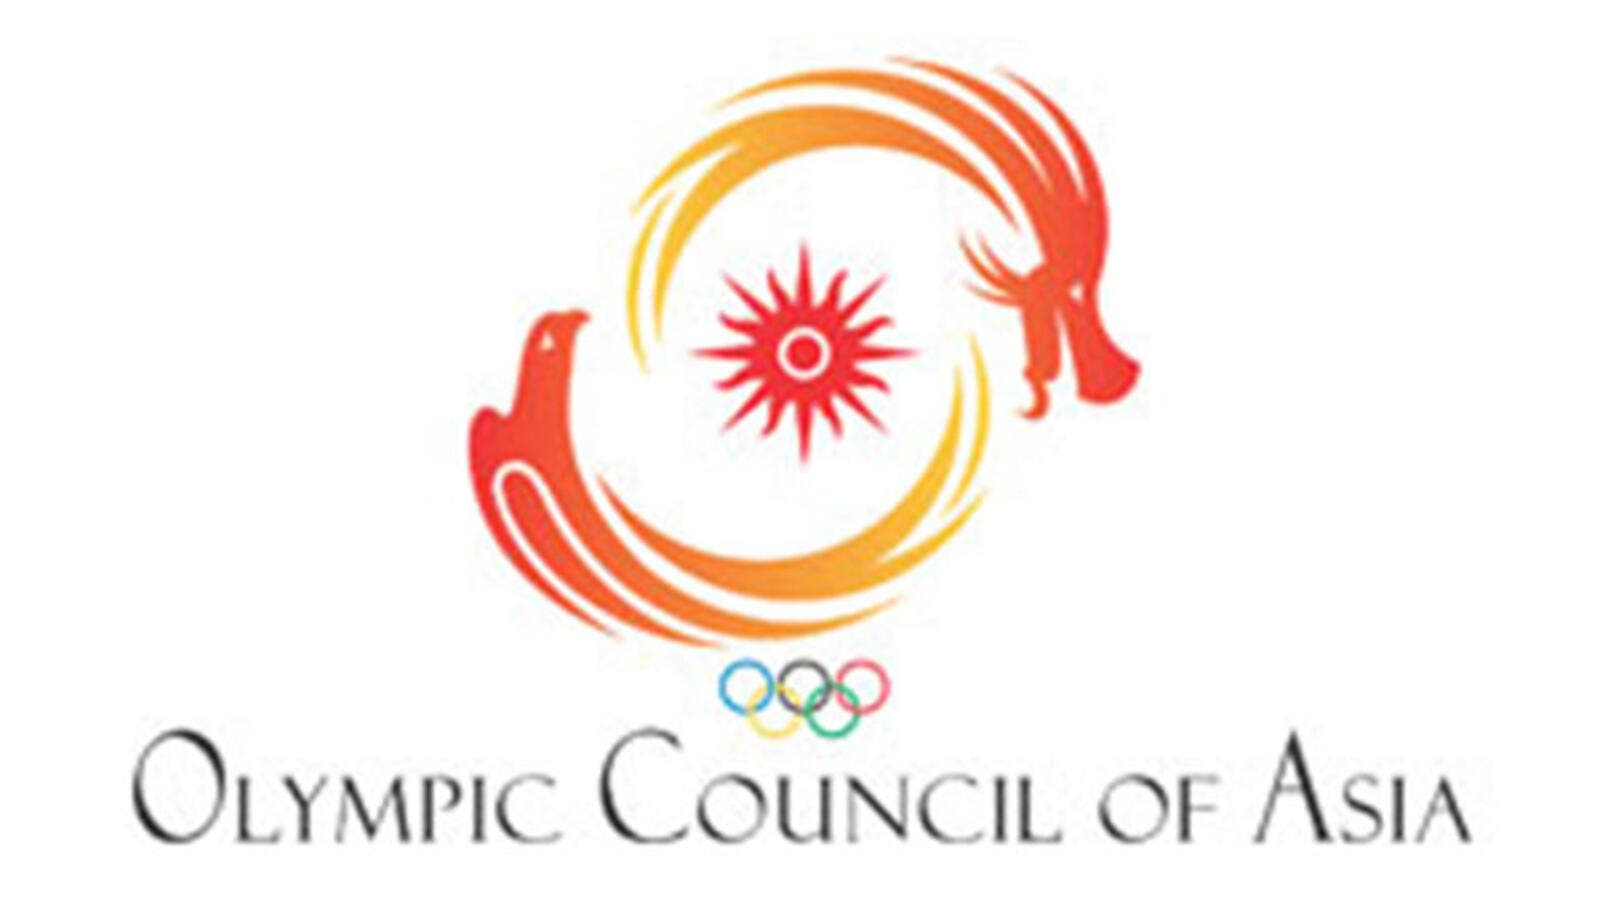 The Olympic Council of Asia logo